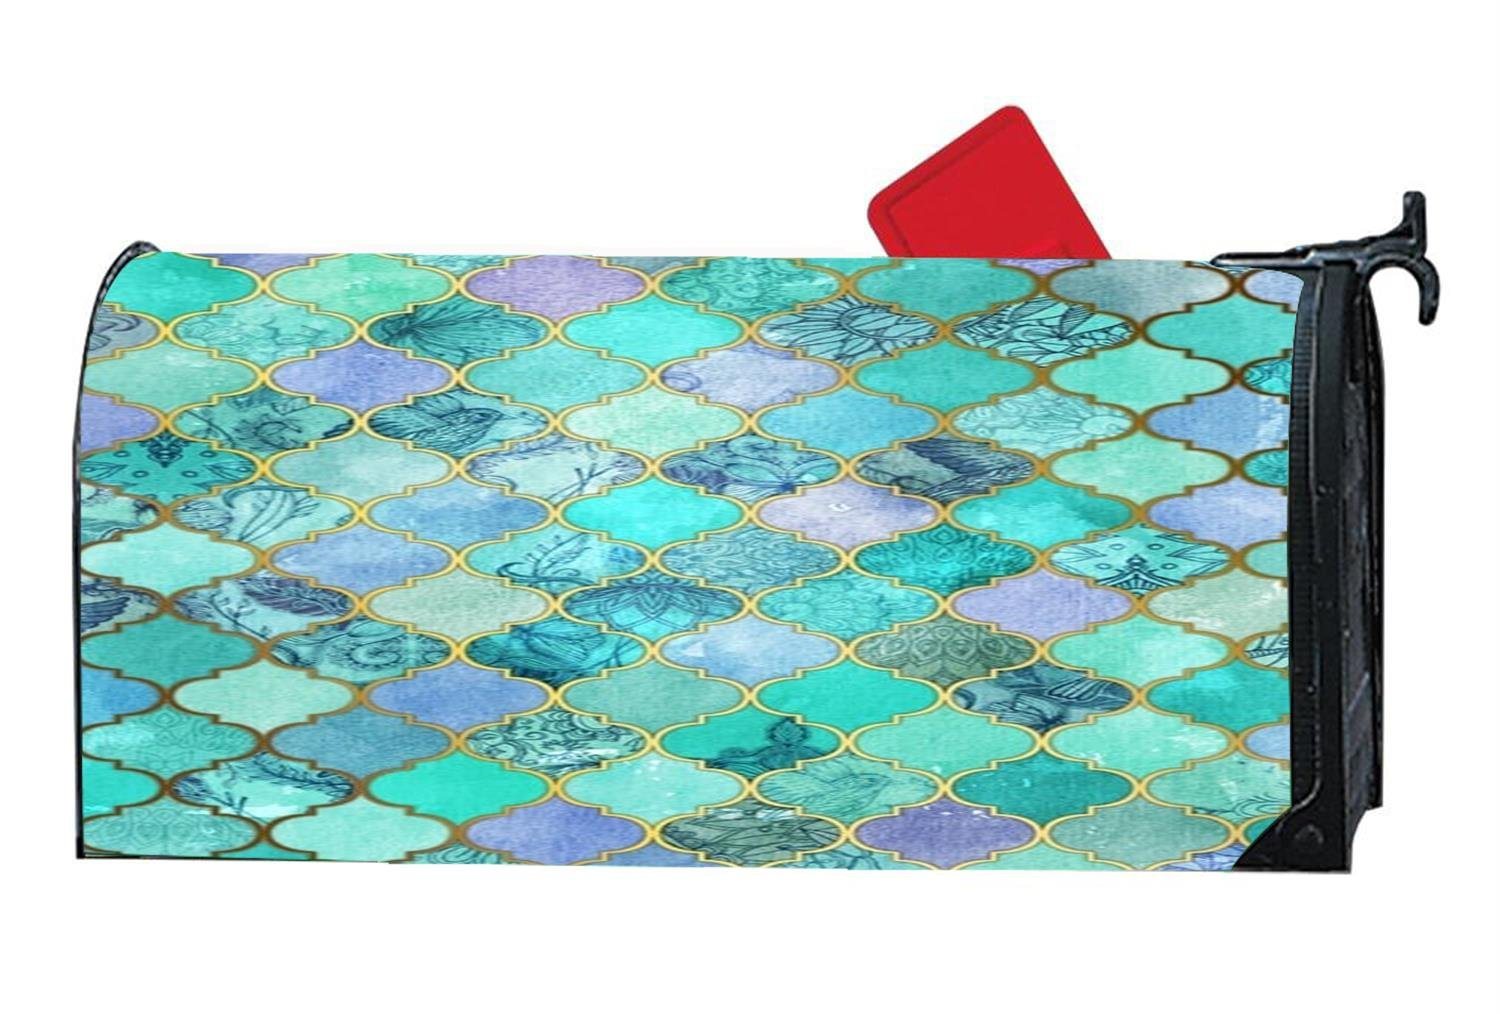 Green And Blue Mermaid Personal Mailbox Covers Home Summer Fall Magnetic Mailbox Cover by Mailboxcoverfhiw